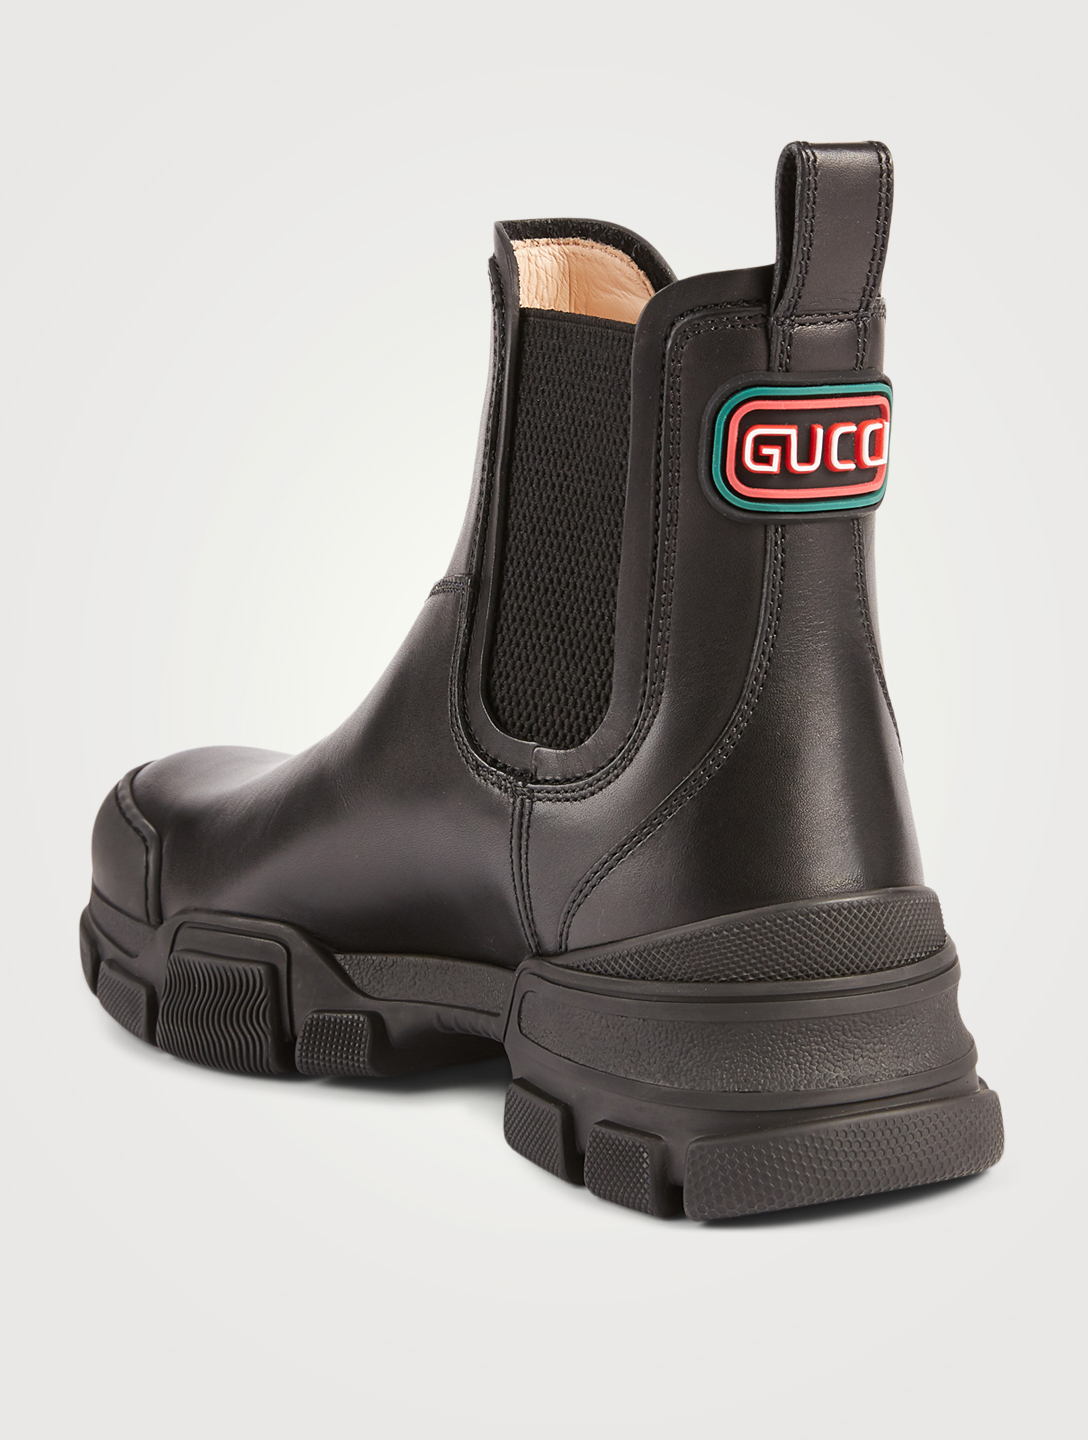 GUCCI Leather Chelsea Boots Women's Black